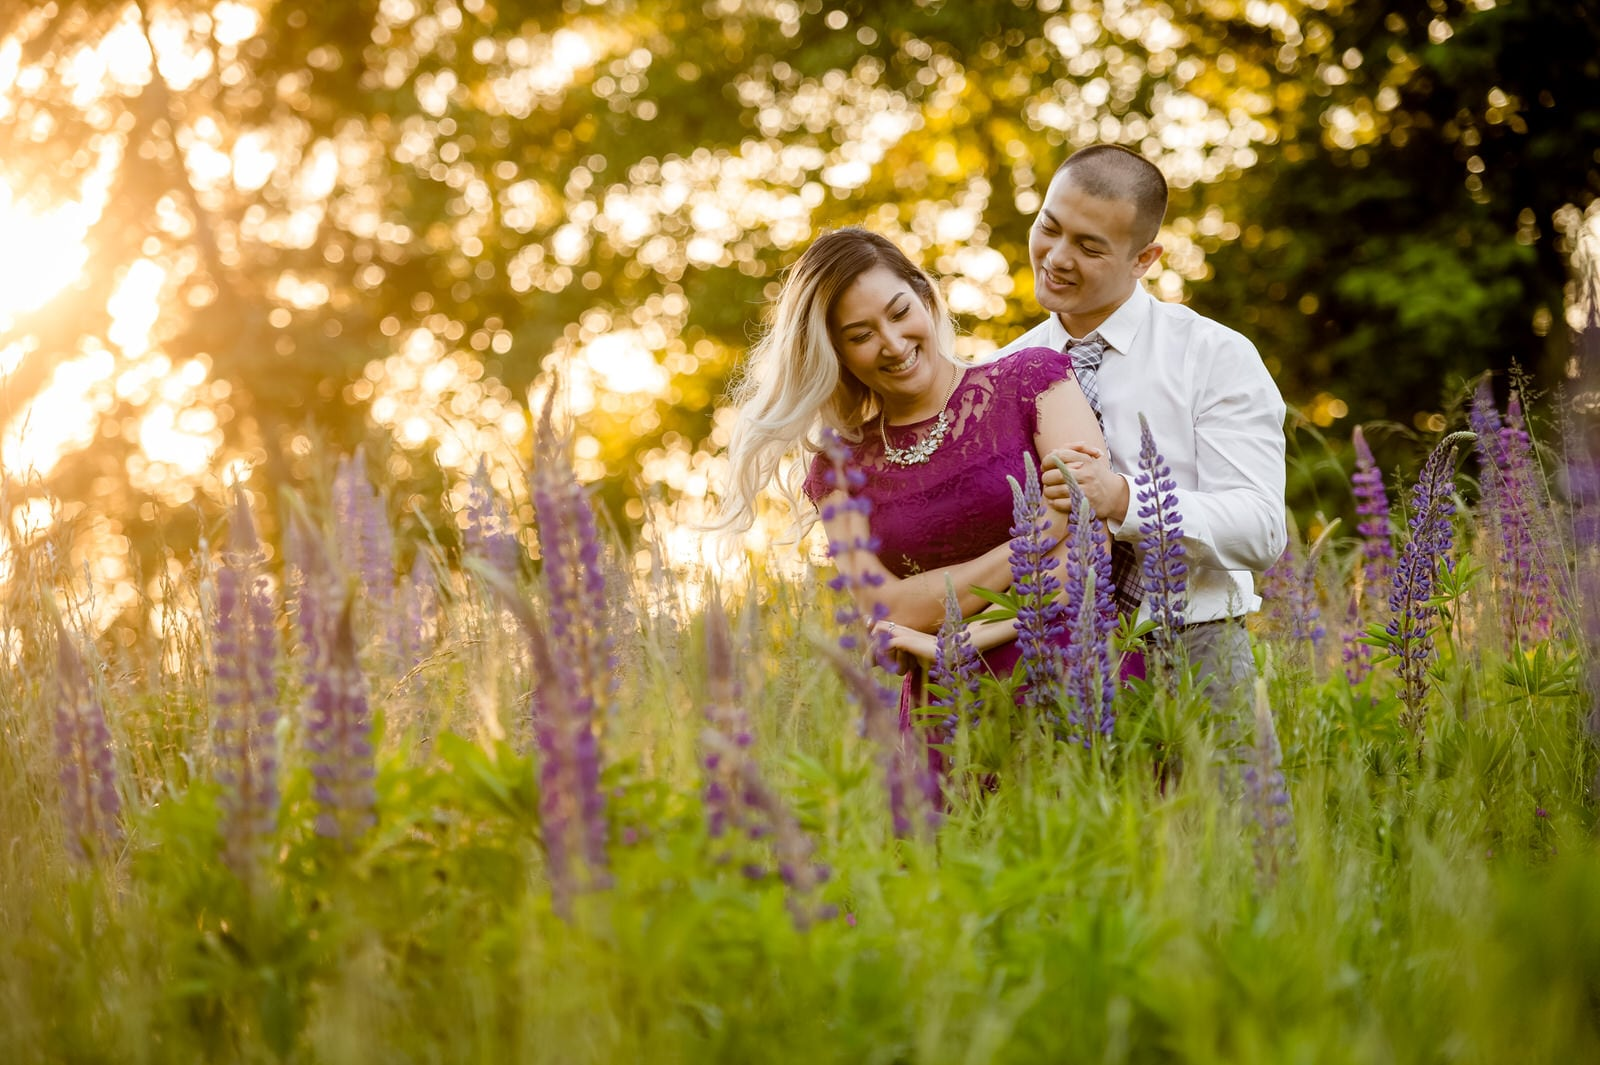 The couple is in a field of flowers.